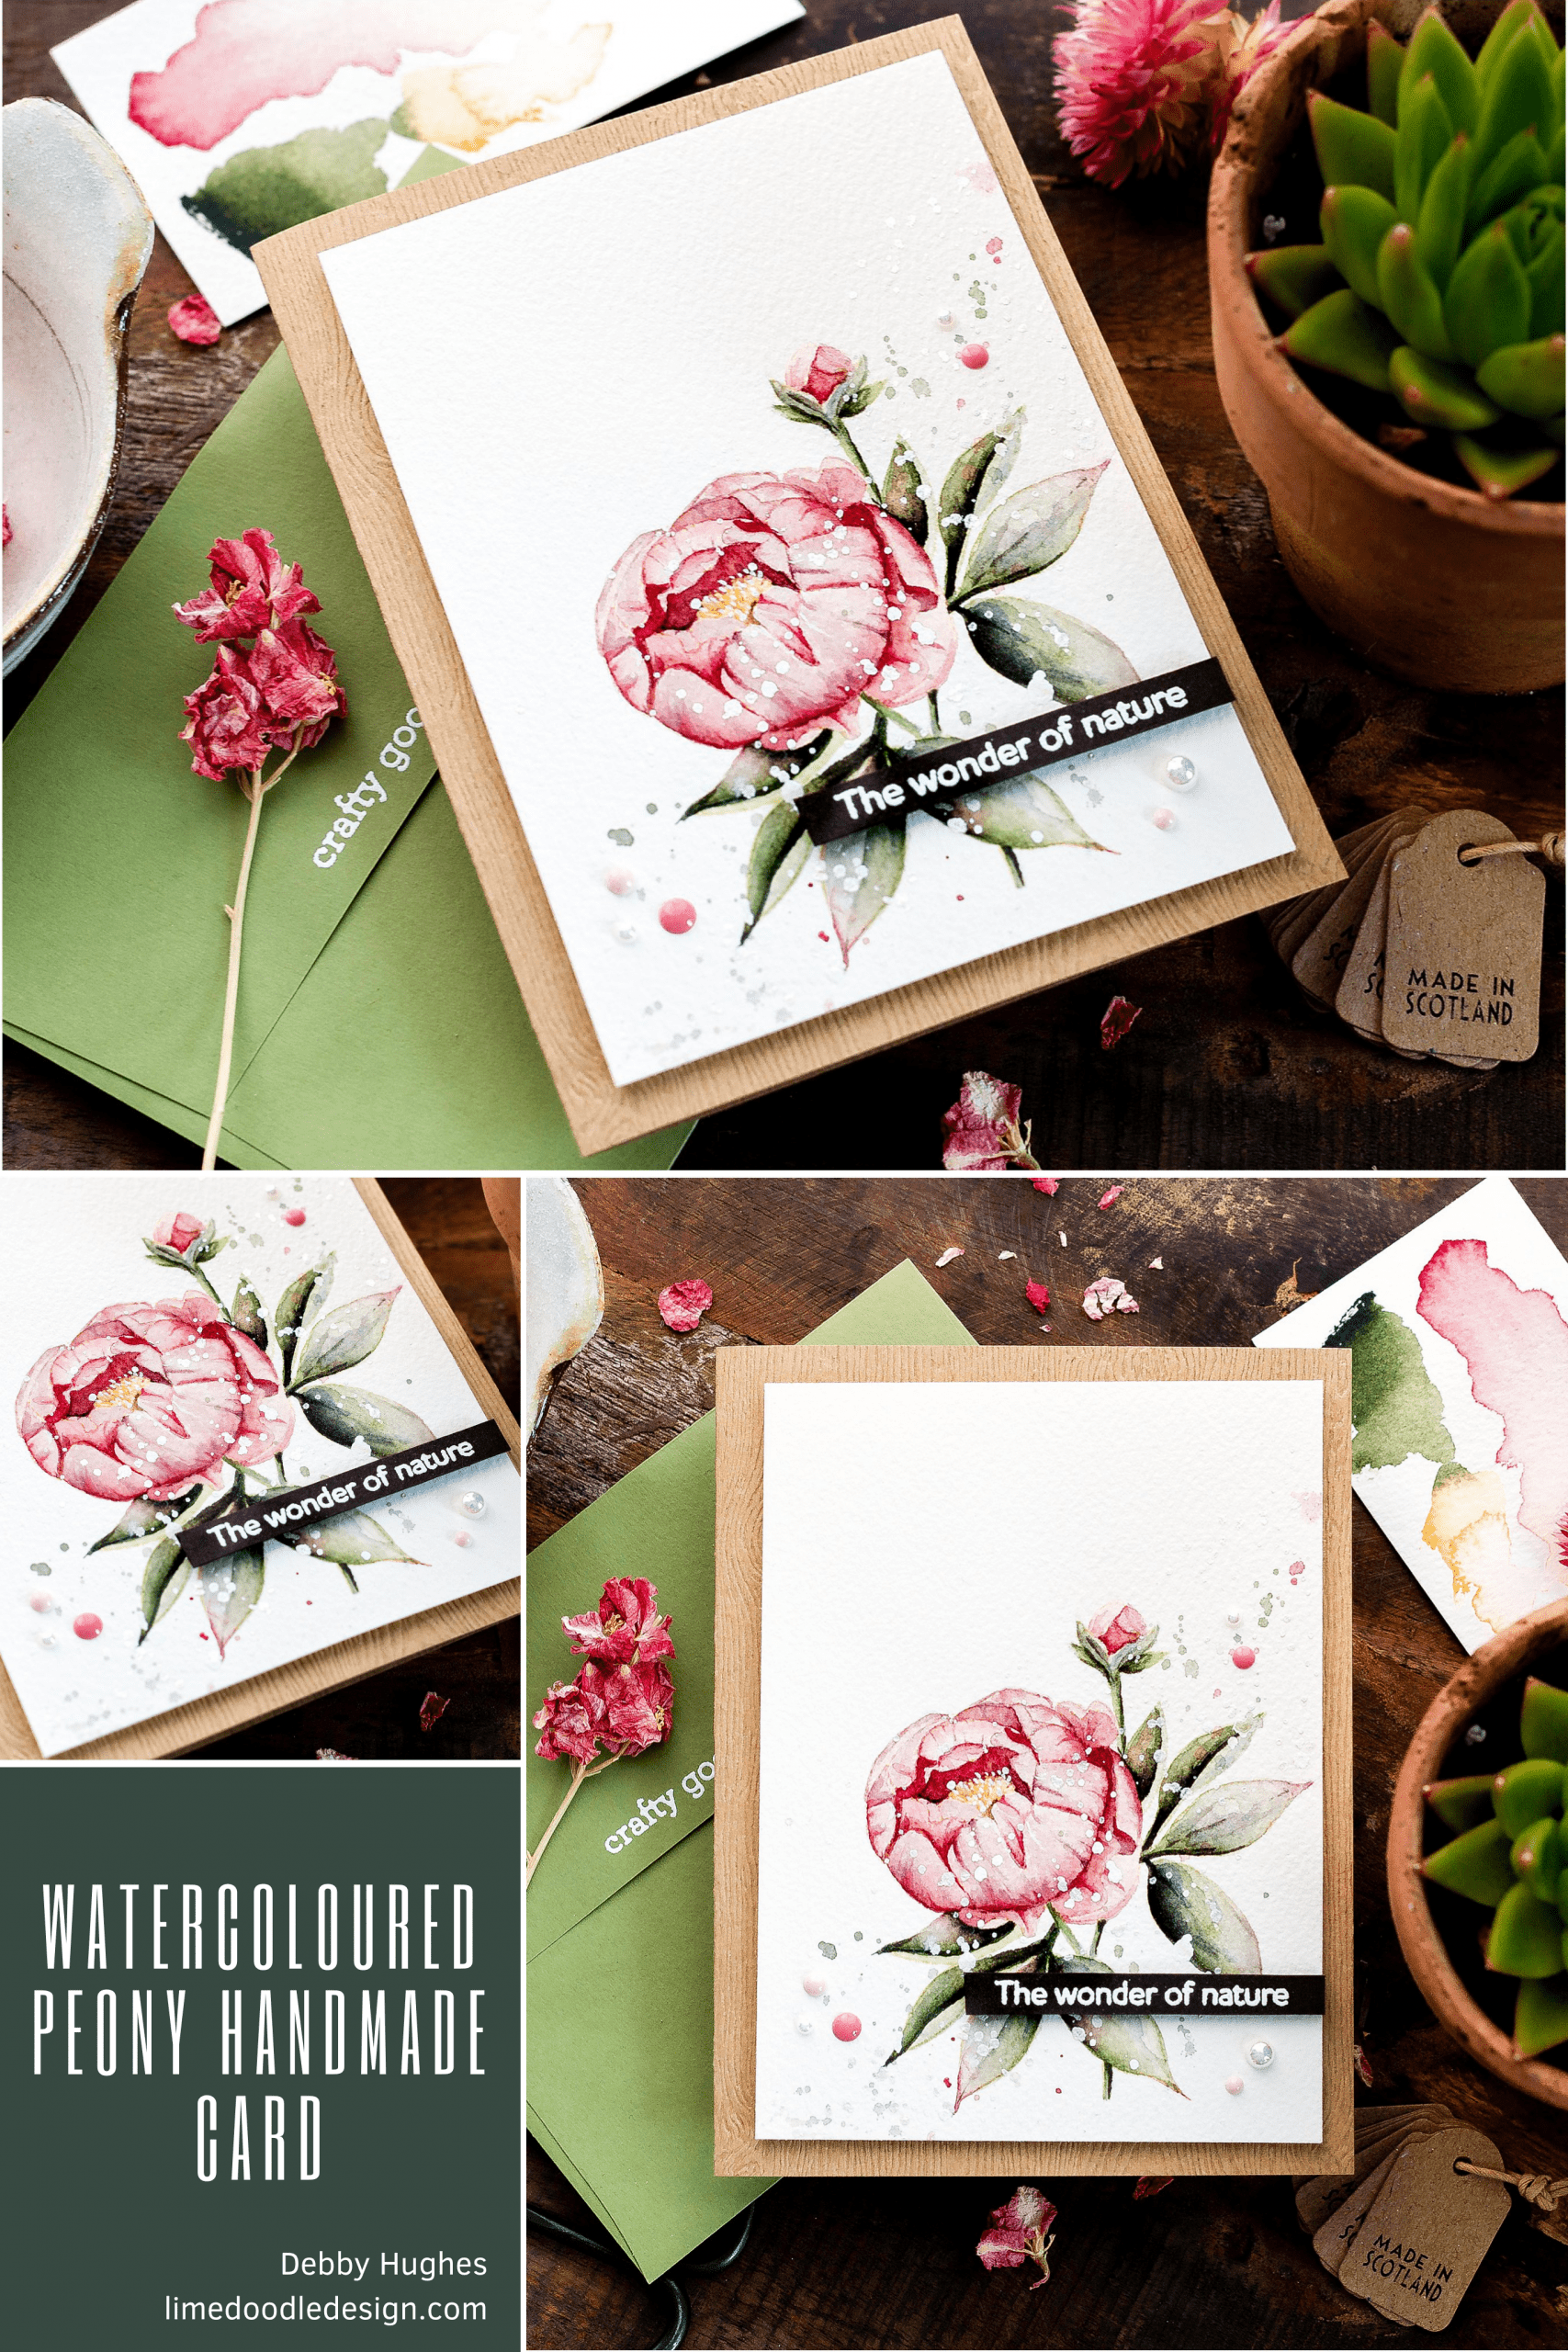 Video tutorial watercolouring a peony flower as a focal point for a handmade card! Design by Debby Hughes using supplies from Simon Says Stamp #handmadecards #cardmaking #cardmakingideas #cardmakingtechniques  #cardmakingtutorials #handmadecardideas #simonsaysstamp